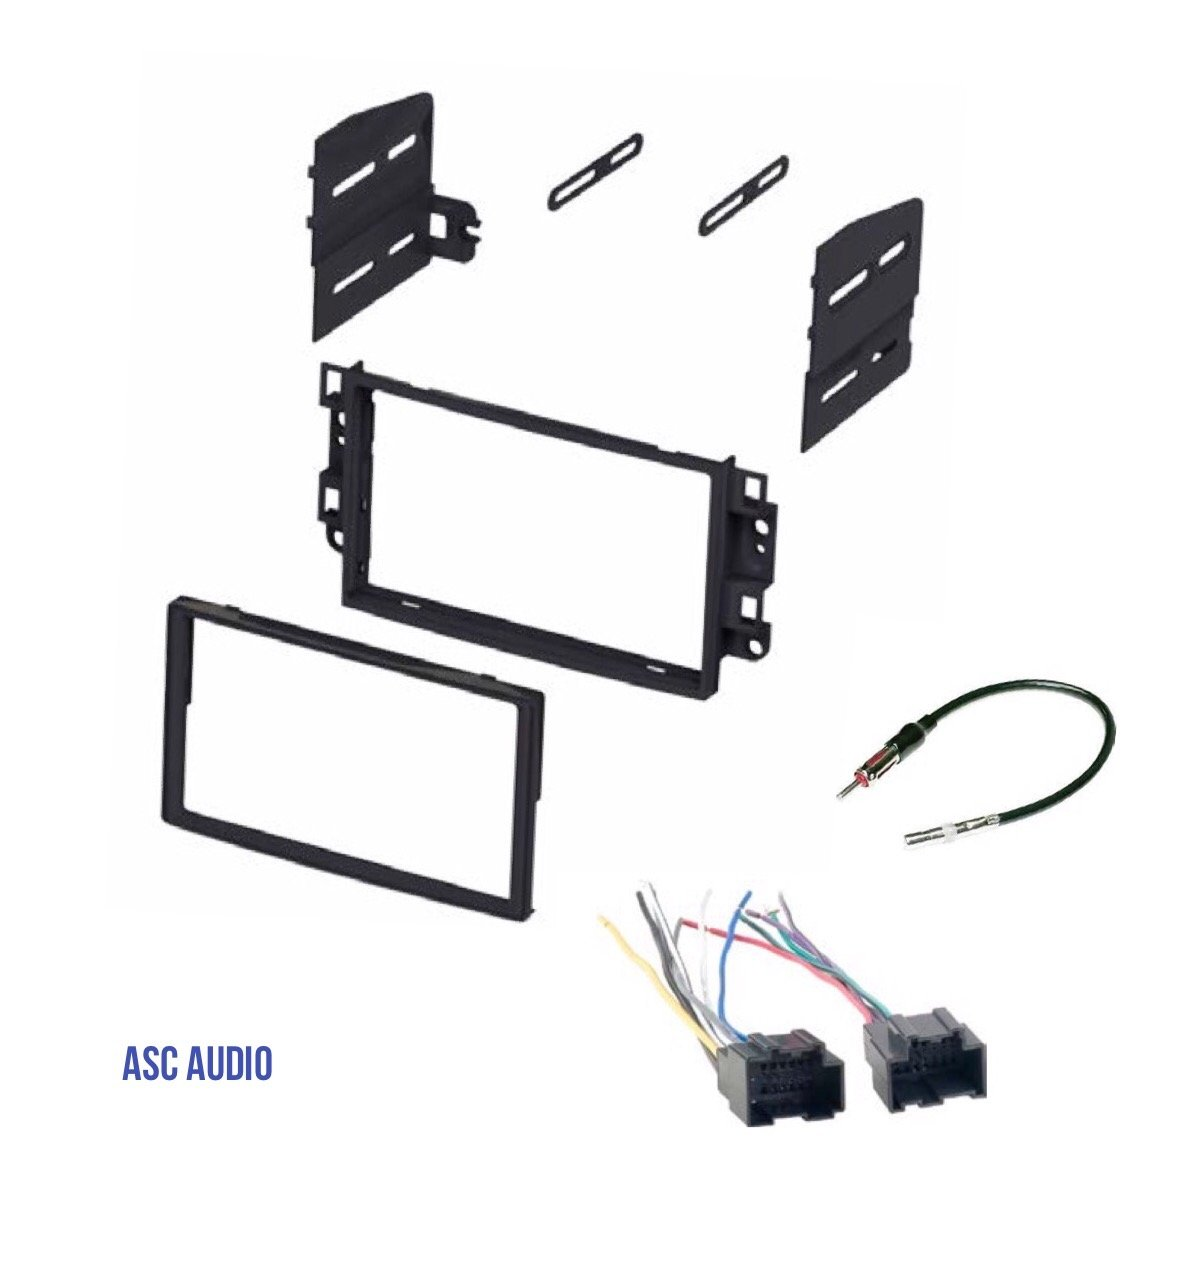 Wire Harness Antenna Adapter to Install Radio for some Pontiac Chevrolet Vehicles Compatible Vehicles Listed Below Other ASC Double Din Car Stereo Dash Kit